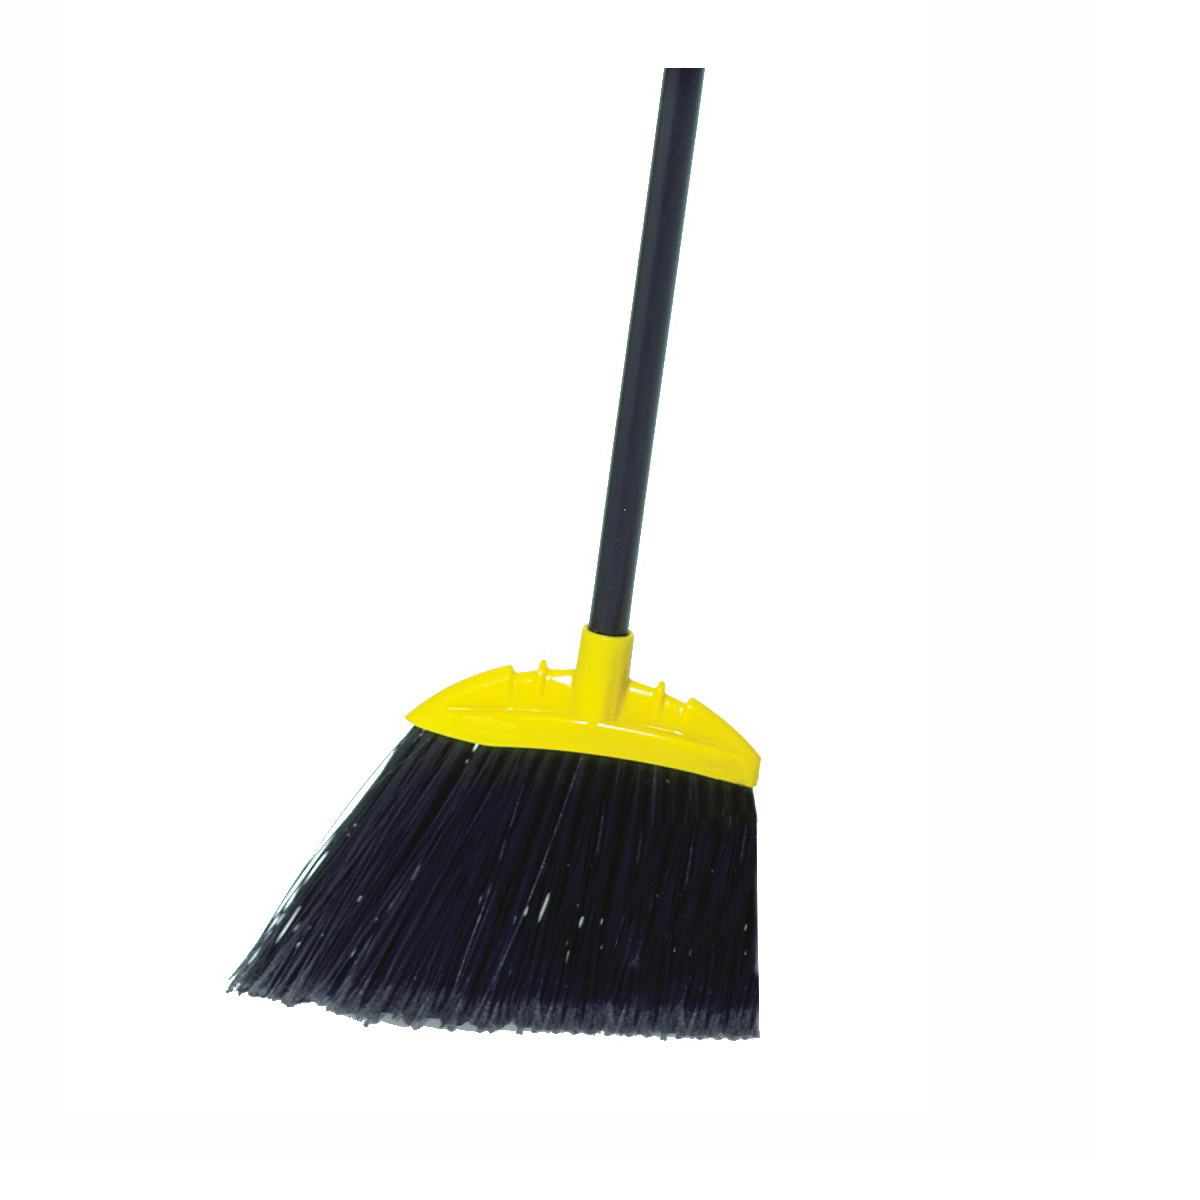 Picture of Rubbermaid FG637400BLA Lobby Broom, 7-1/2 in Sweep Face, 5 in L Trim, Polypropylene Bristle, Black Bristle, 35 in L